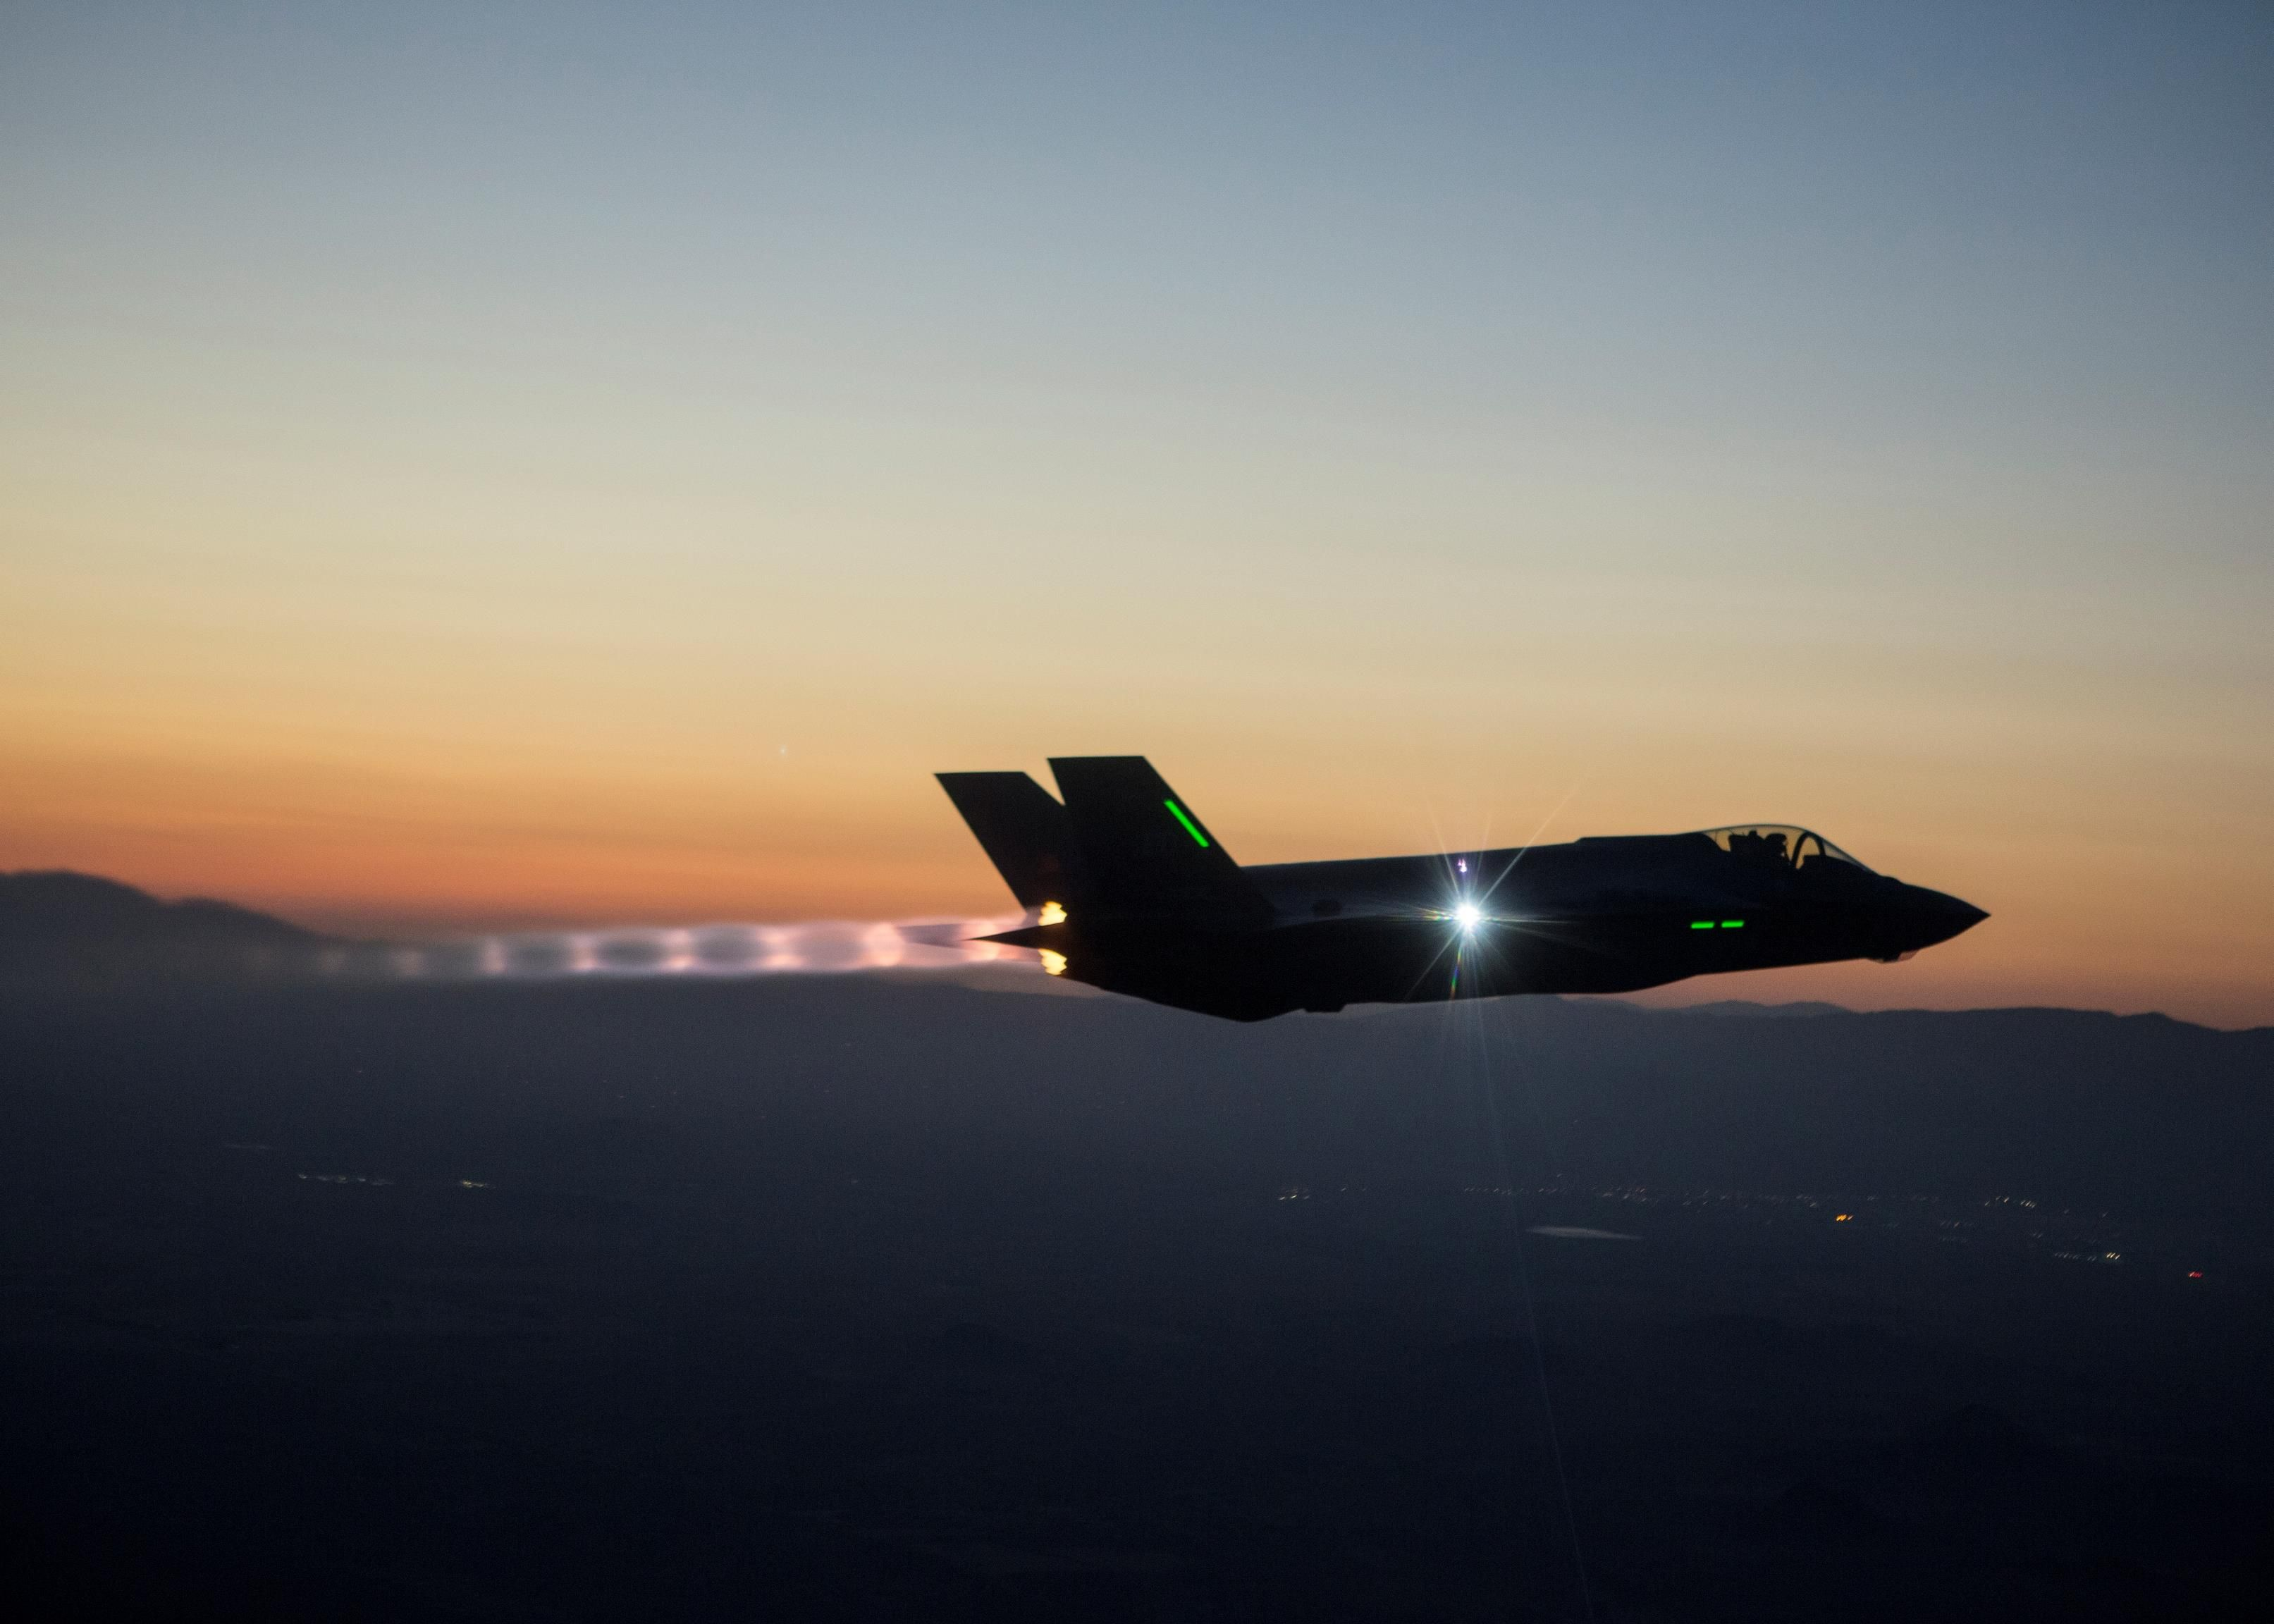 F-35 NIGHT FLYING